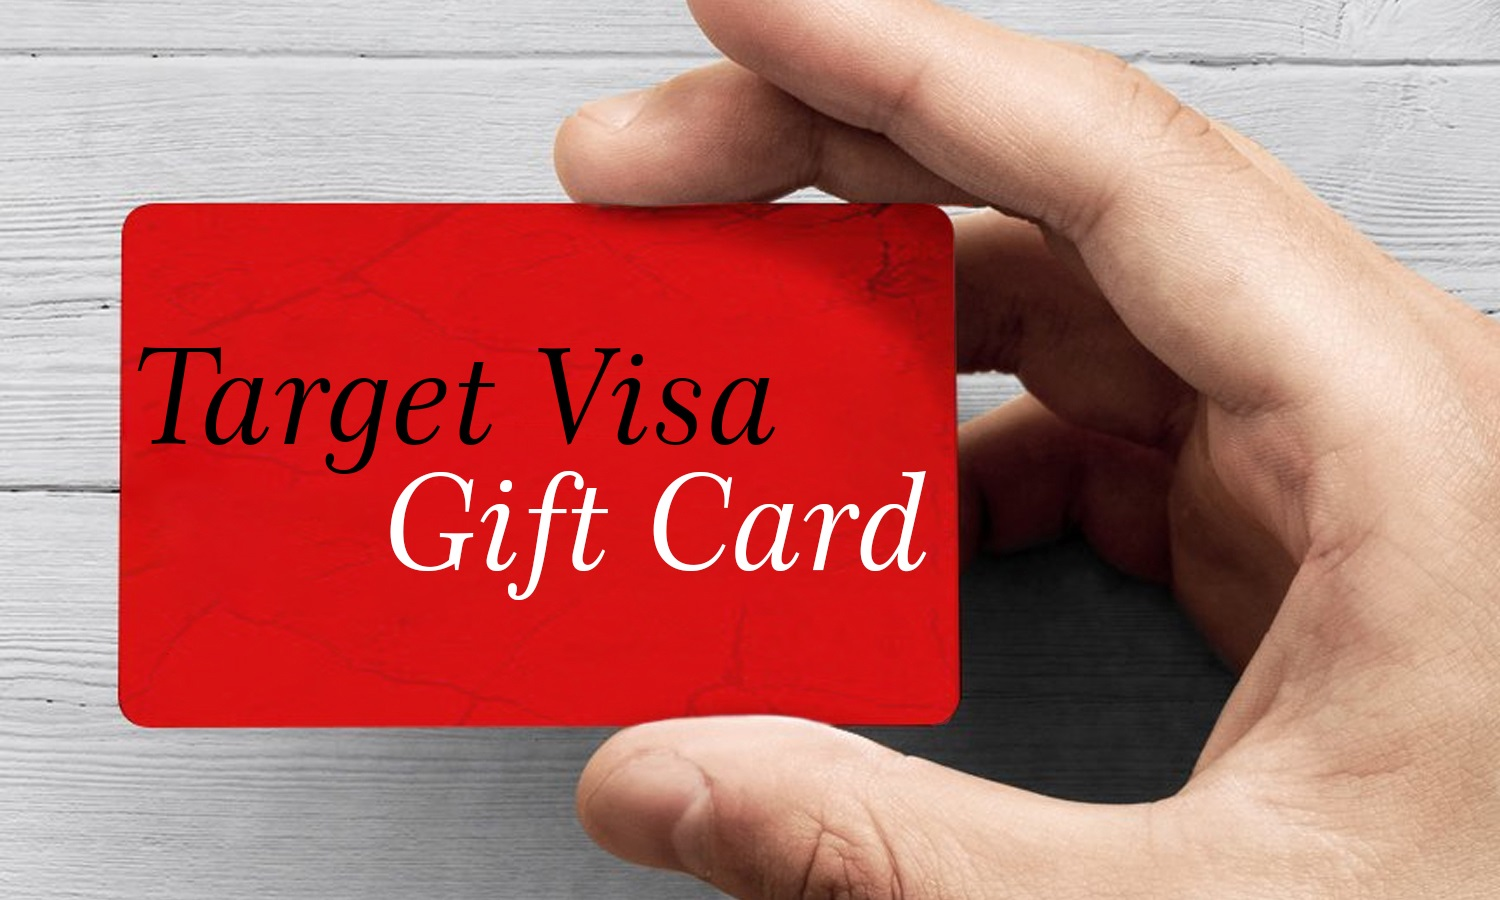 A Target Gift Card - The Most Commonly Used Product